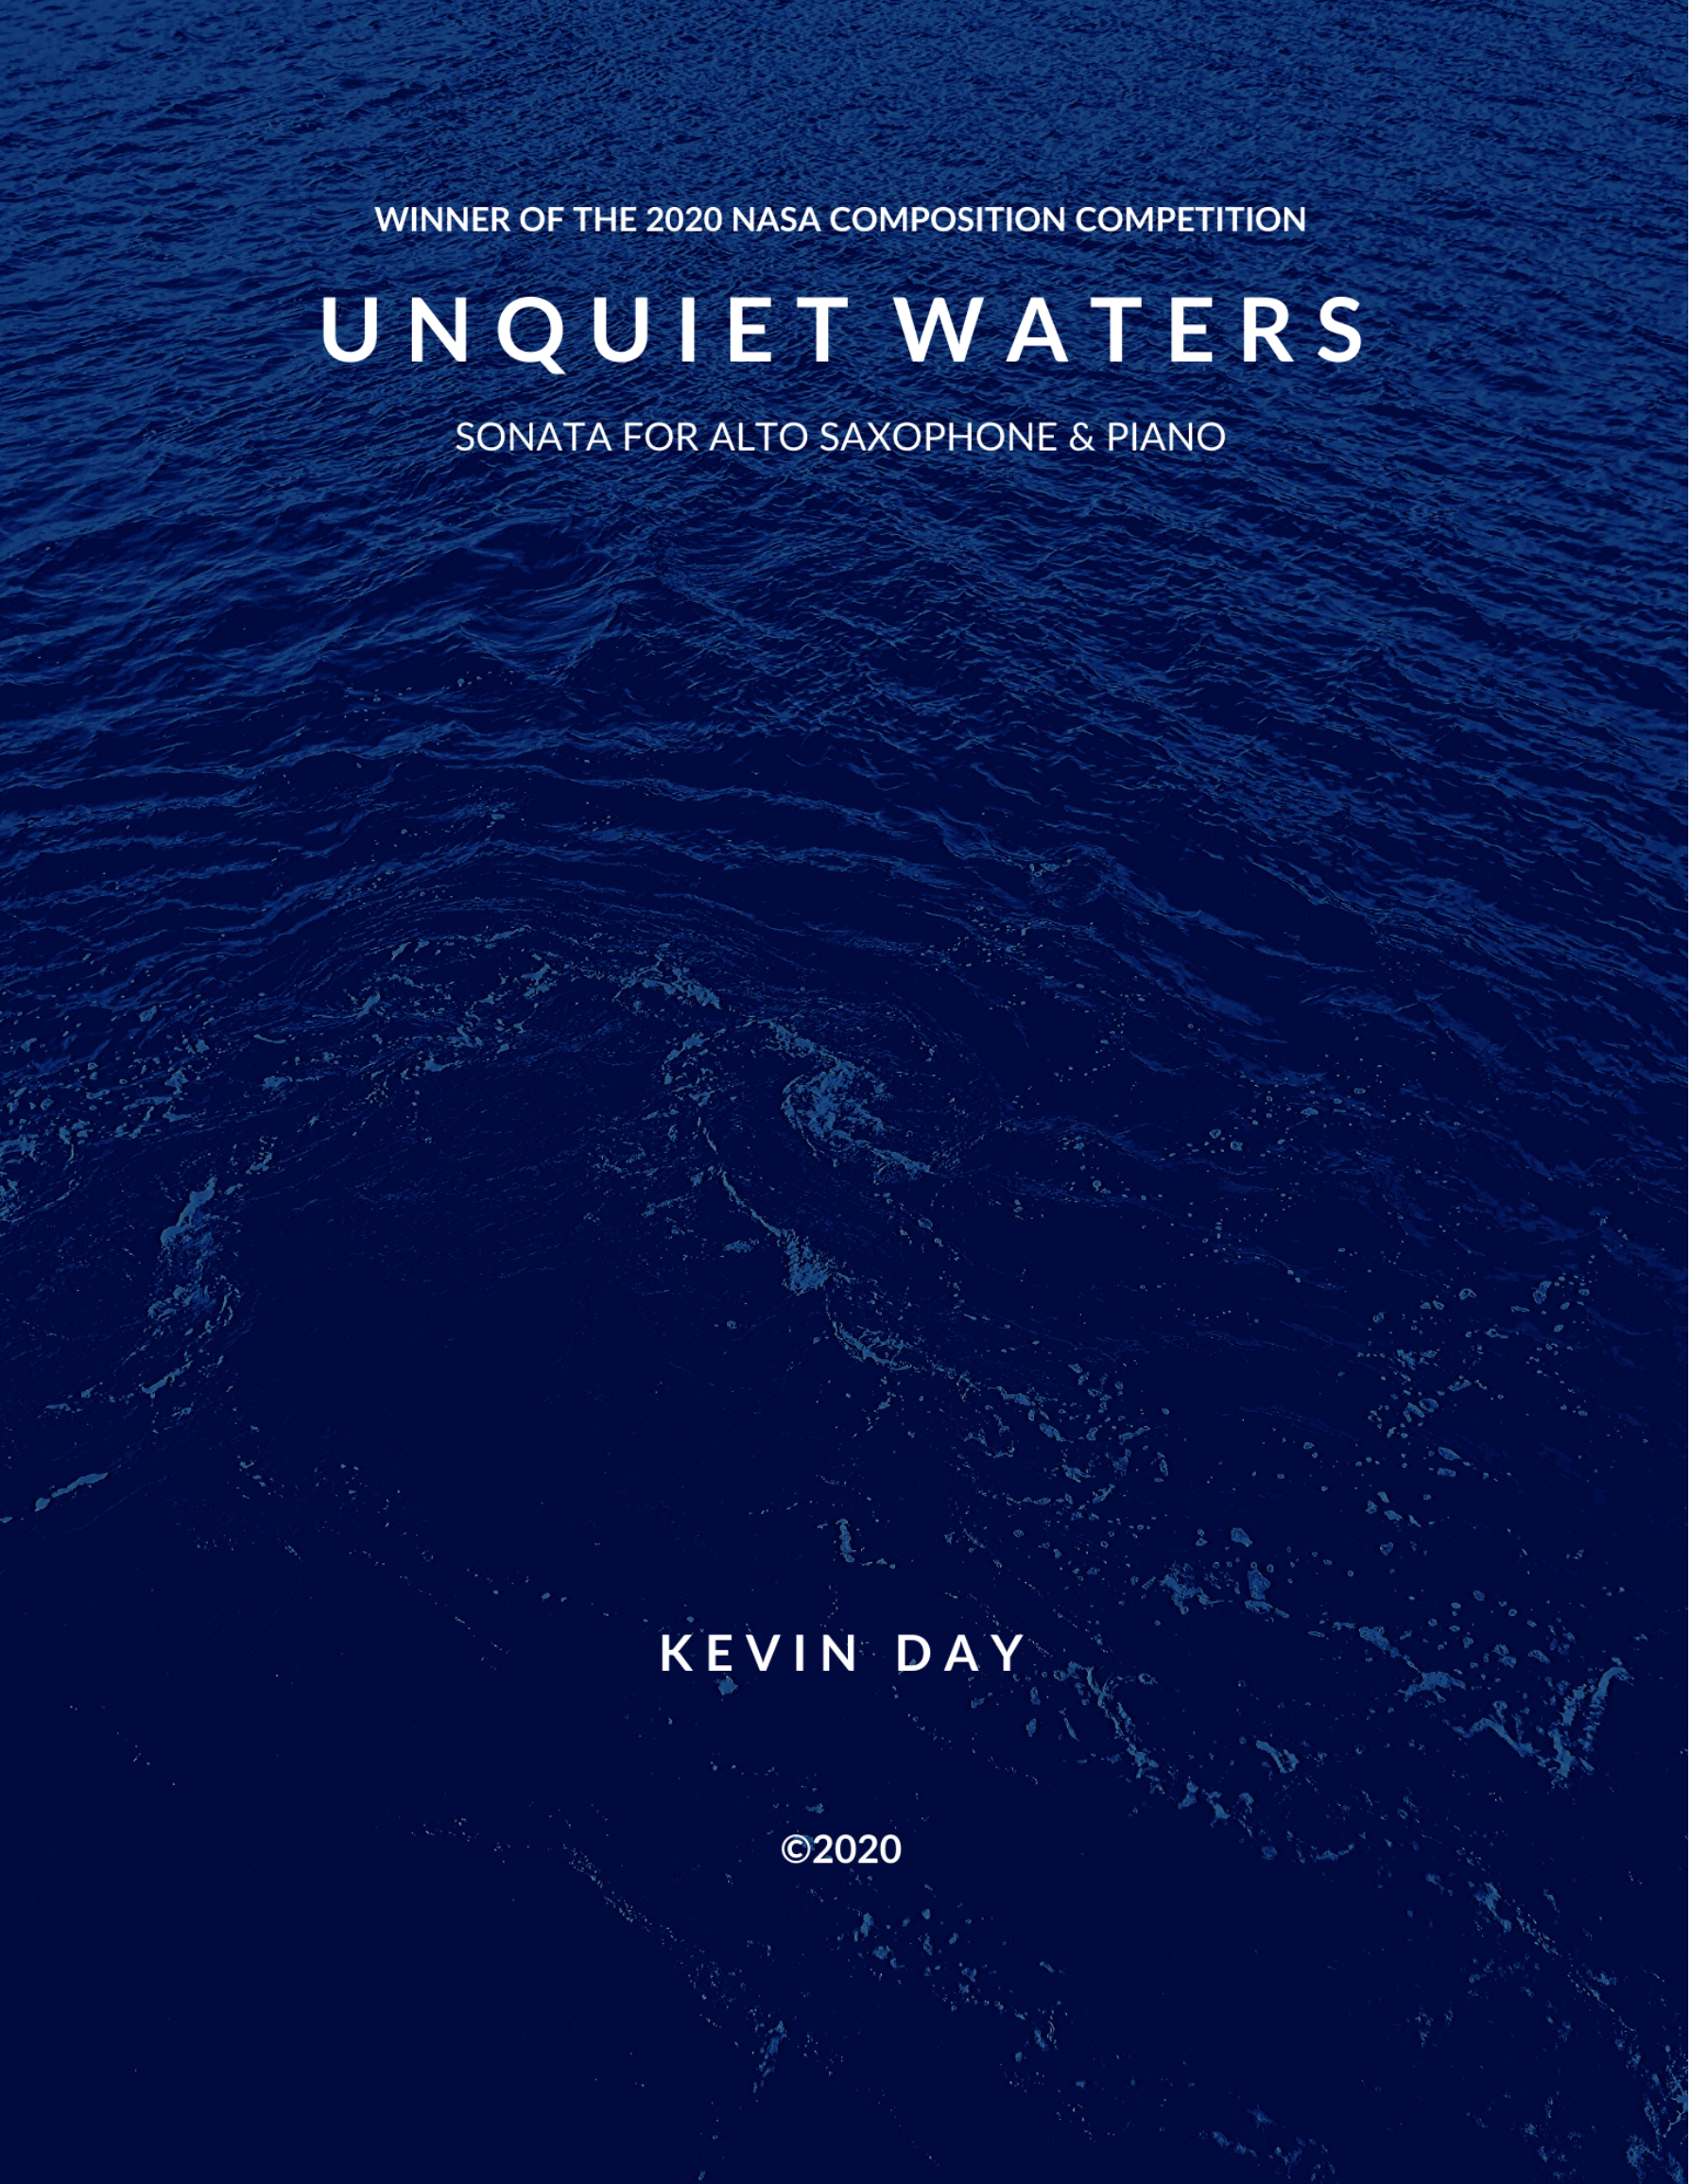 Unquiet Waters by Kevin Day